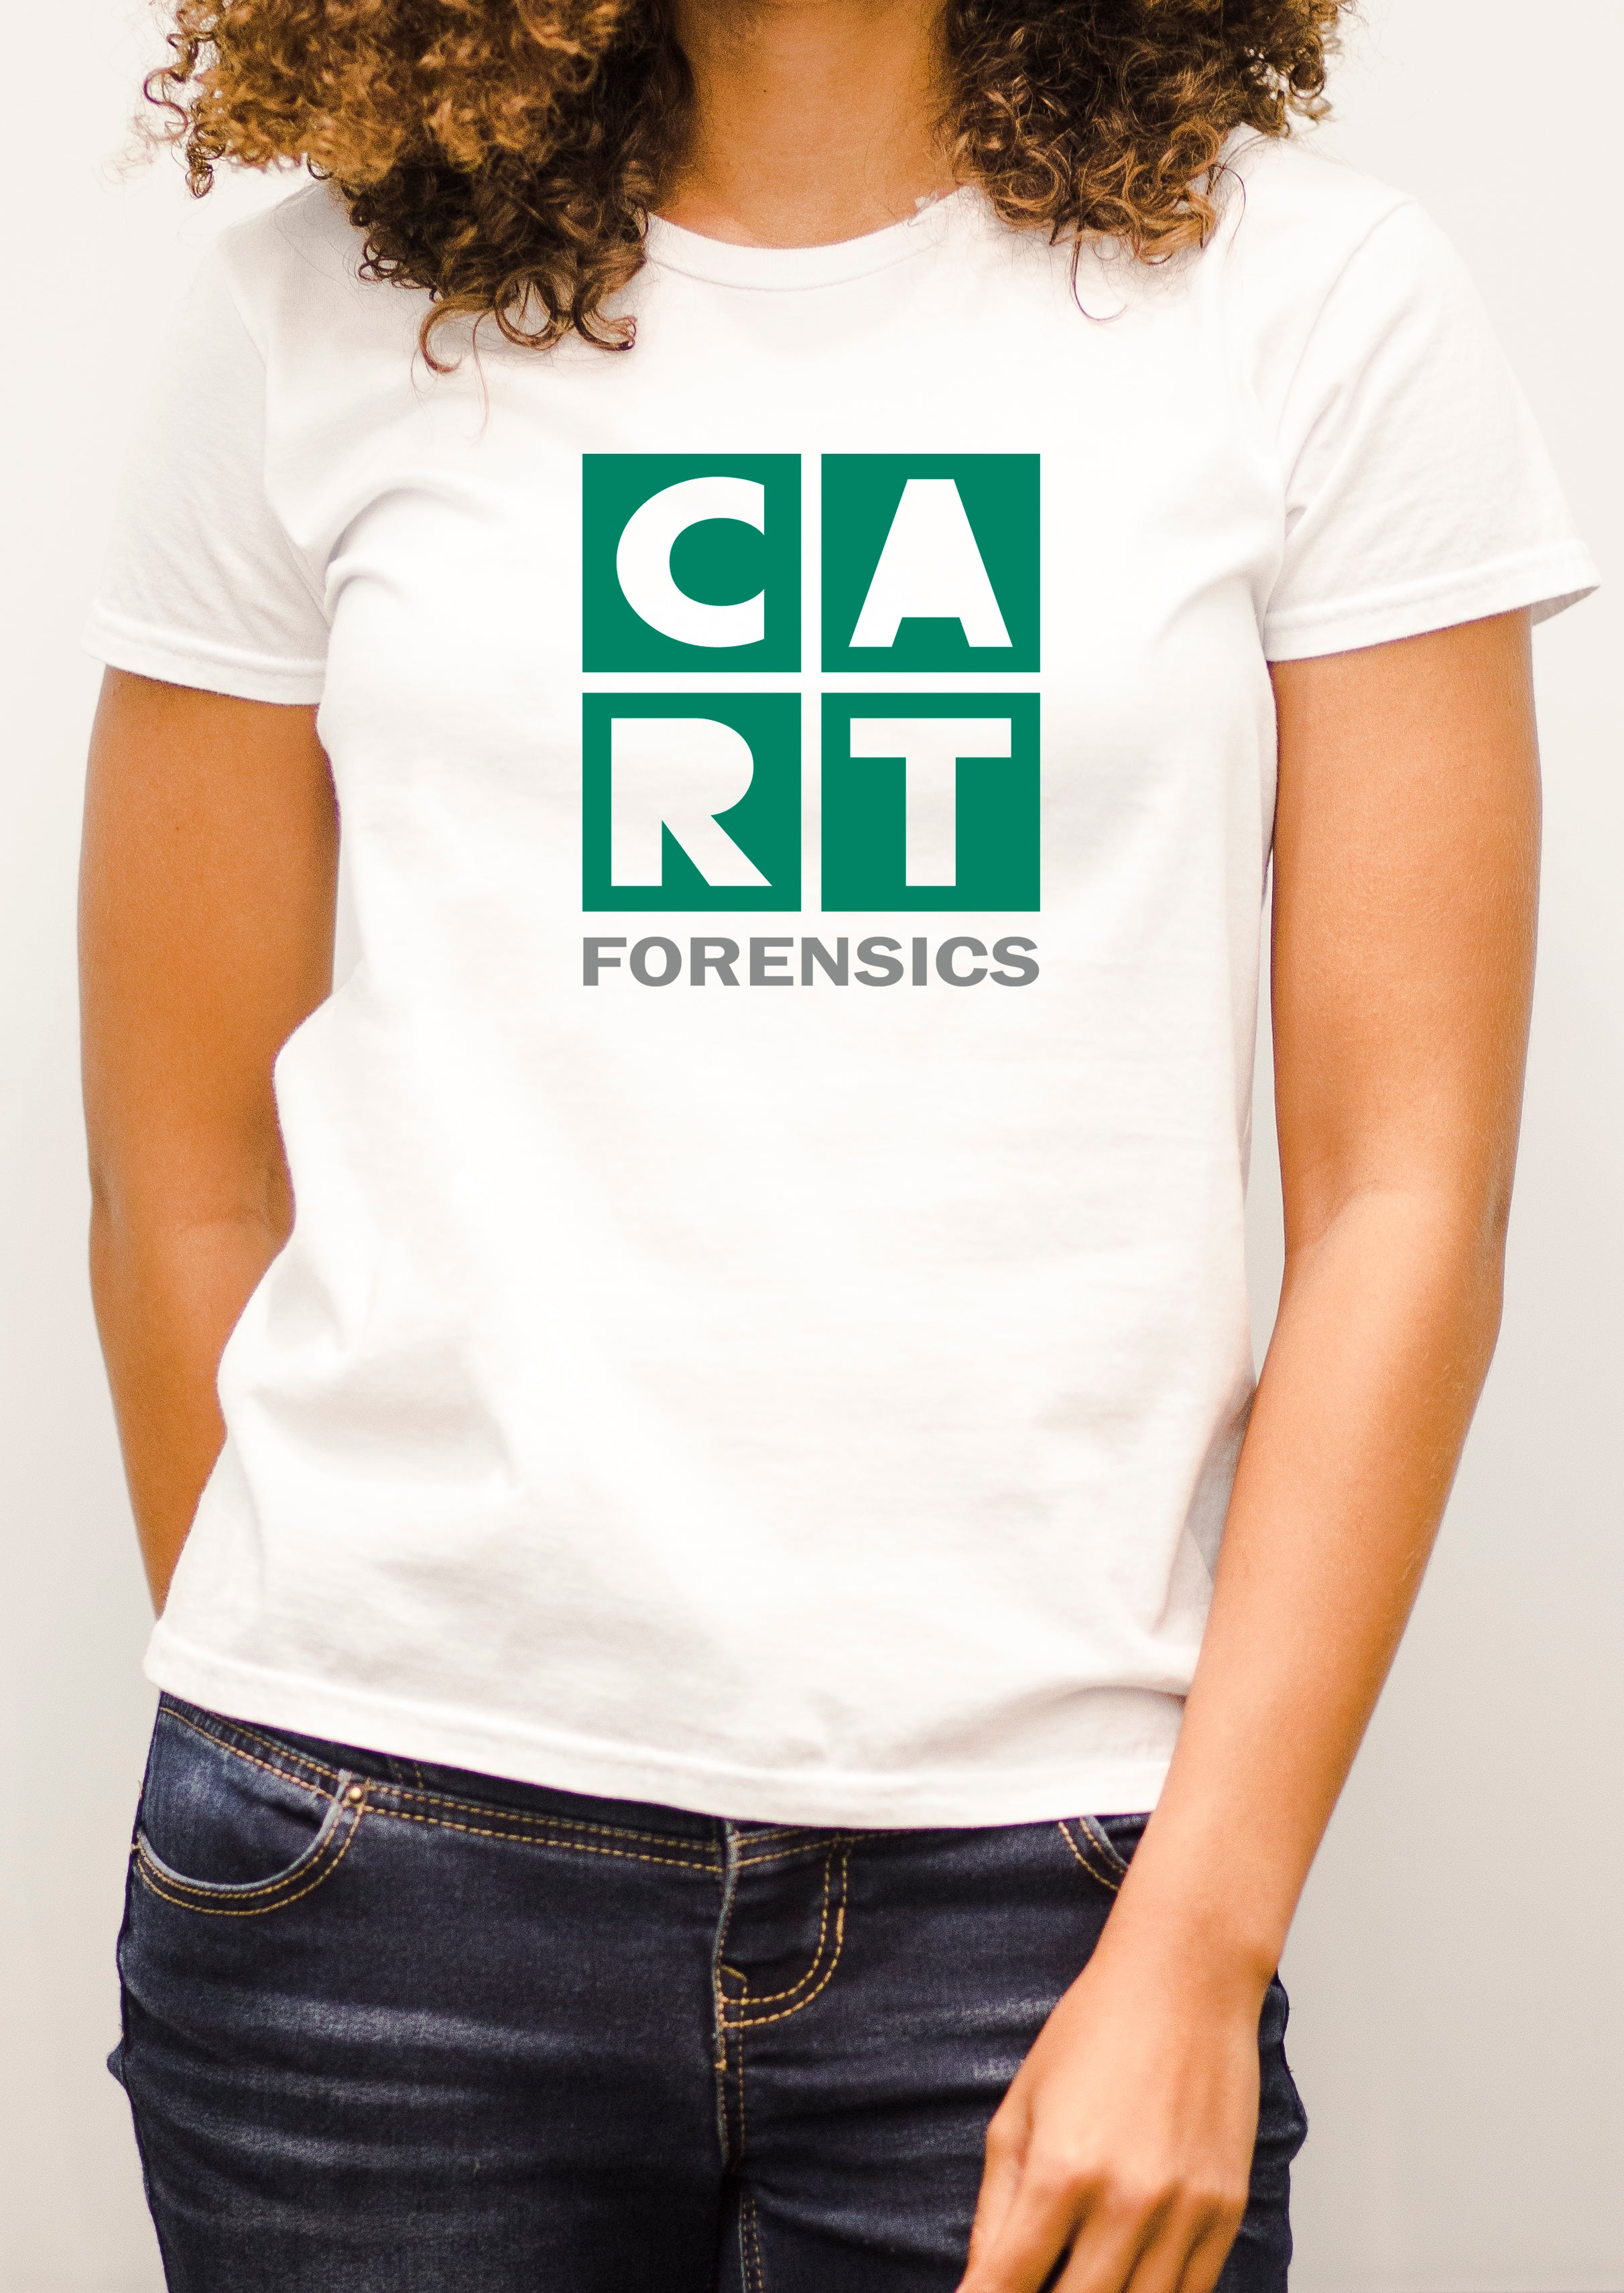 Women's short sleeve t-shirt - forensics green/grey